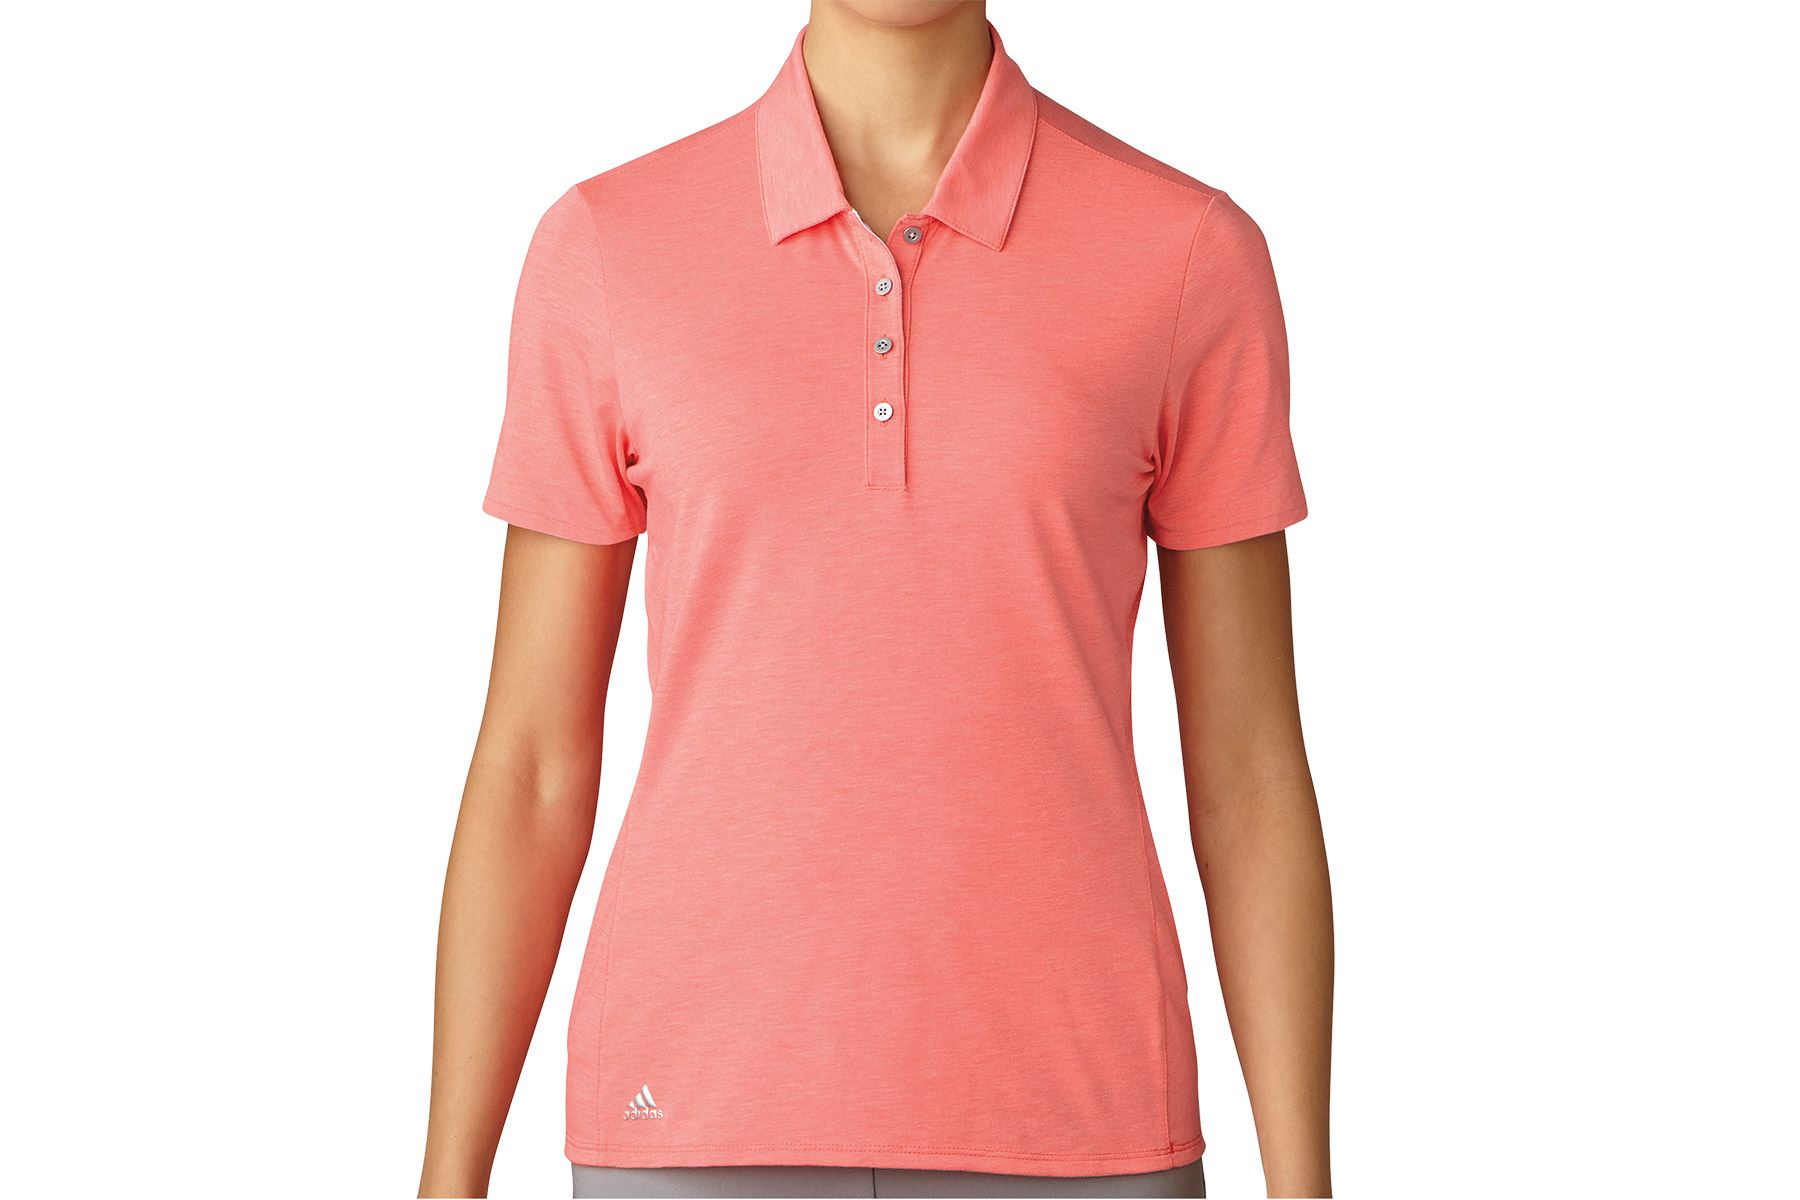 Adidas Golf Essentials Cotton Hand Ladies Polo Shirt From